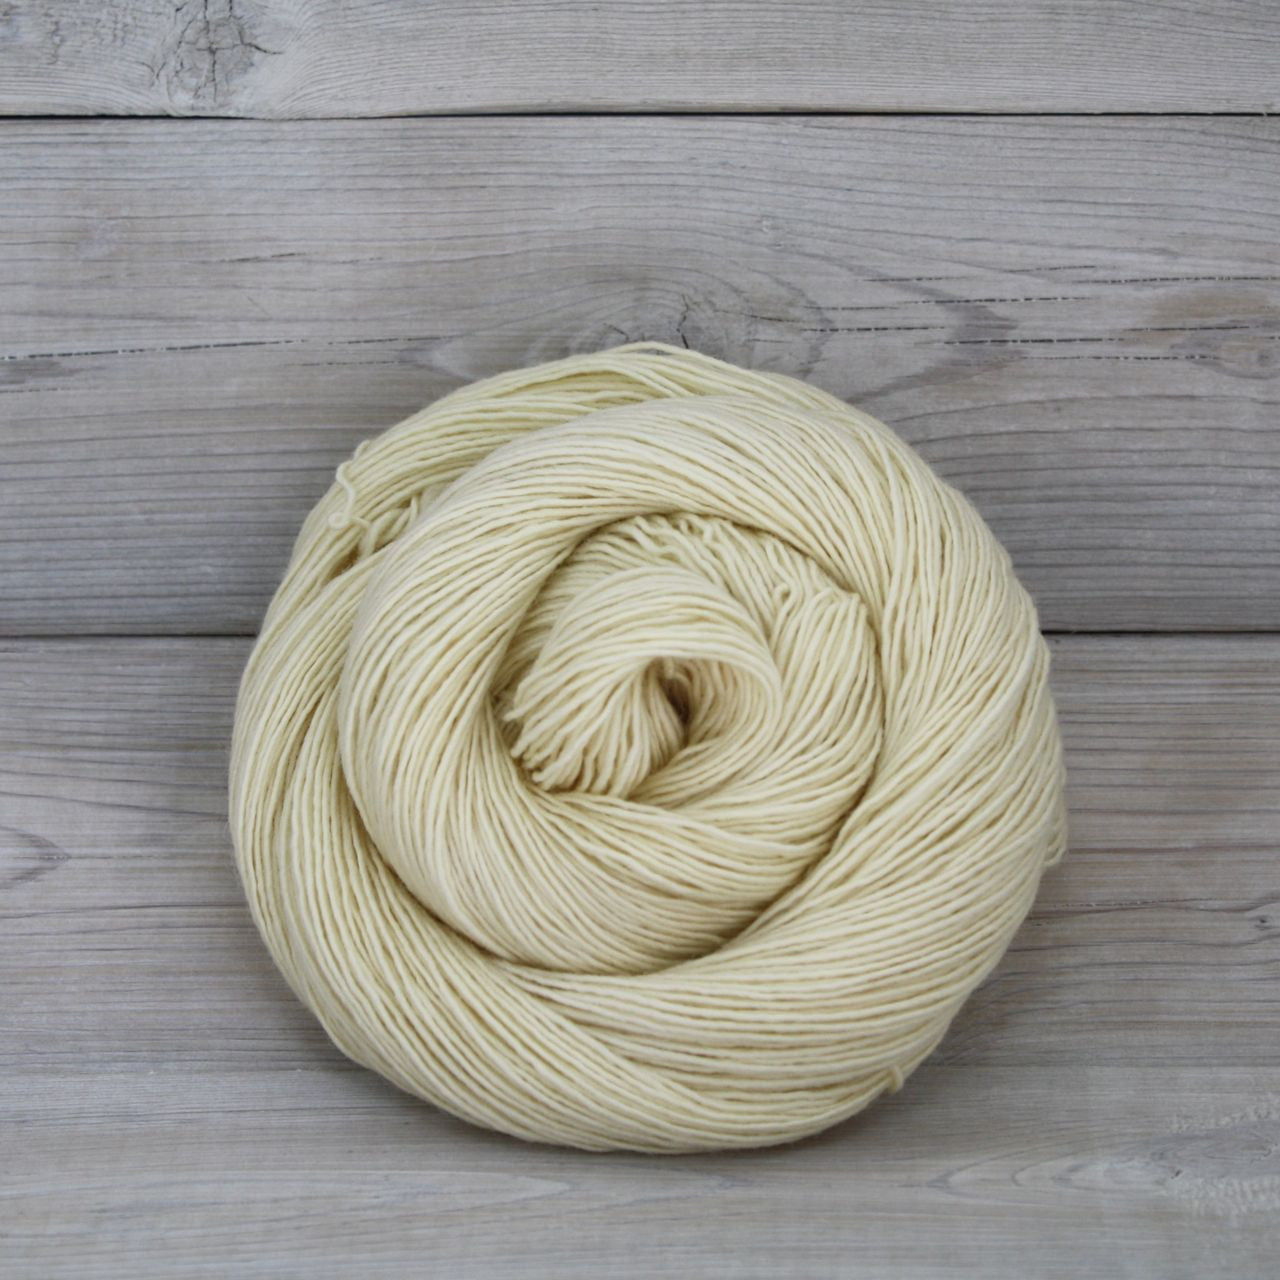 Lumina Yarn | Colorway: Natural